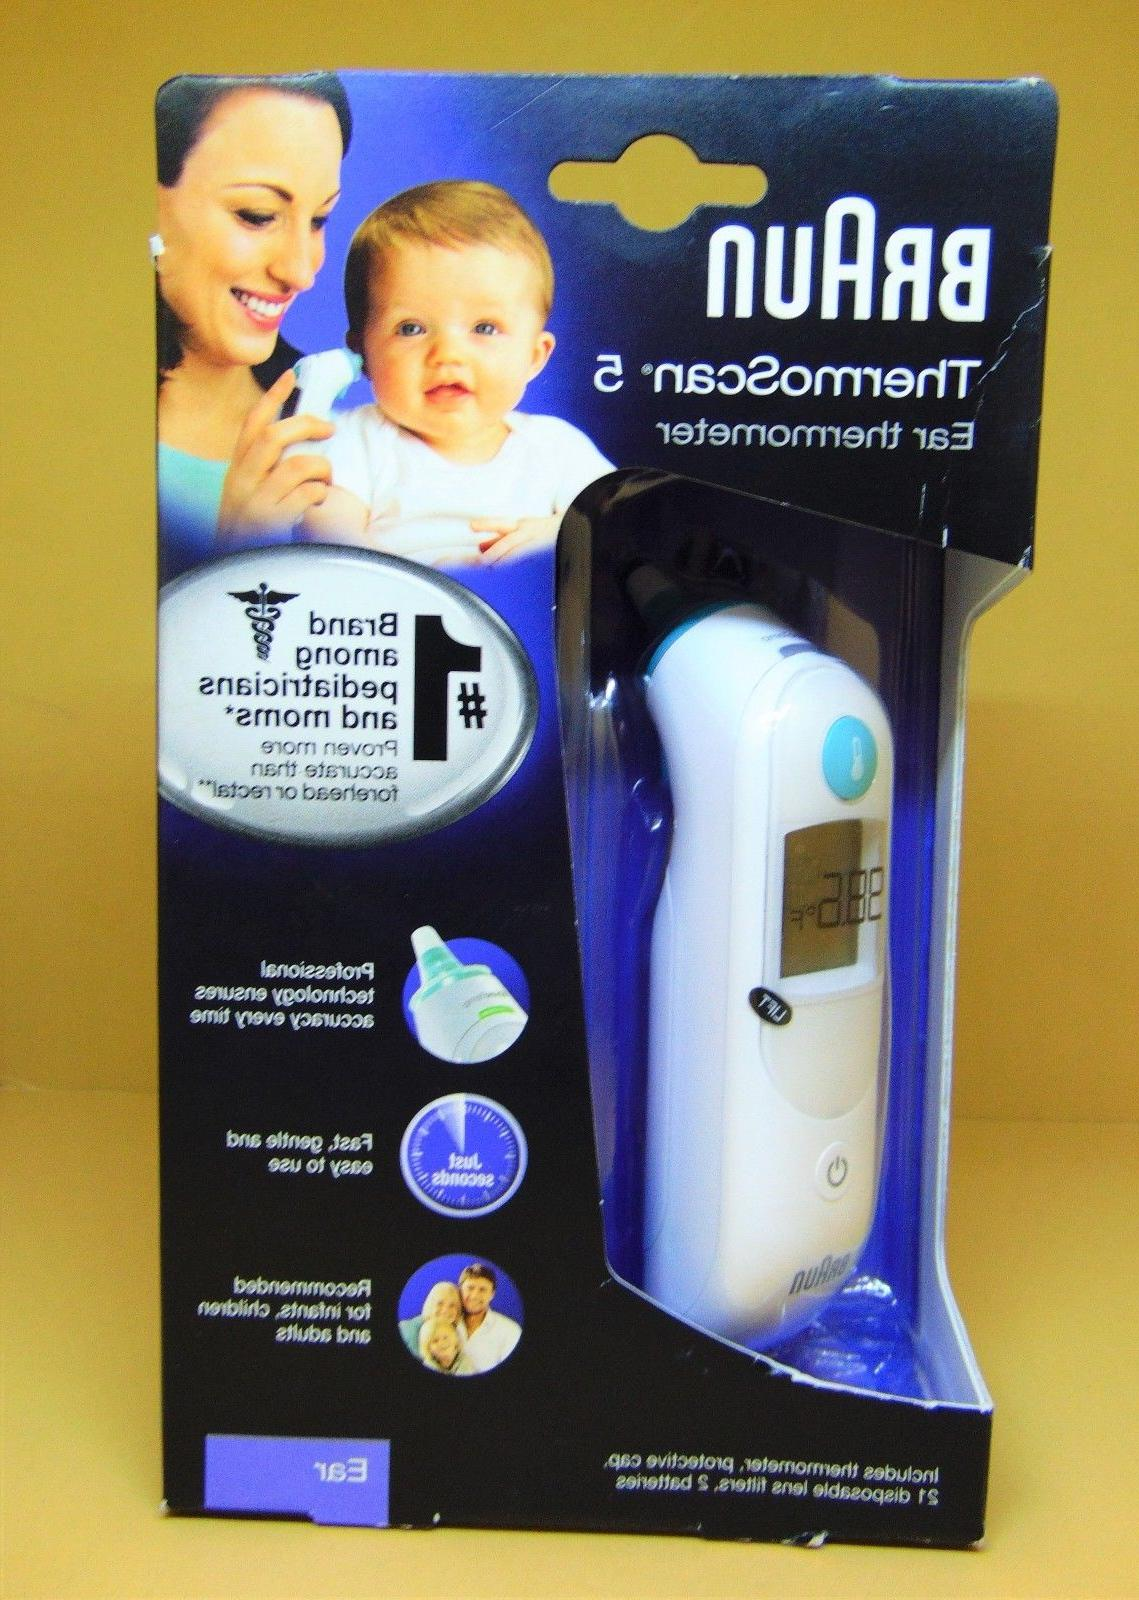 thermoscan 5 ear thermometer